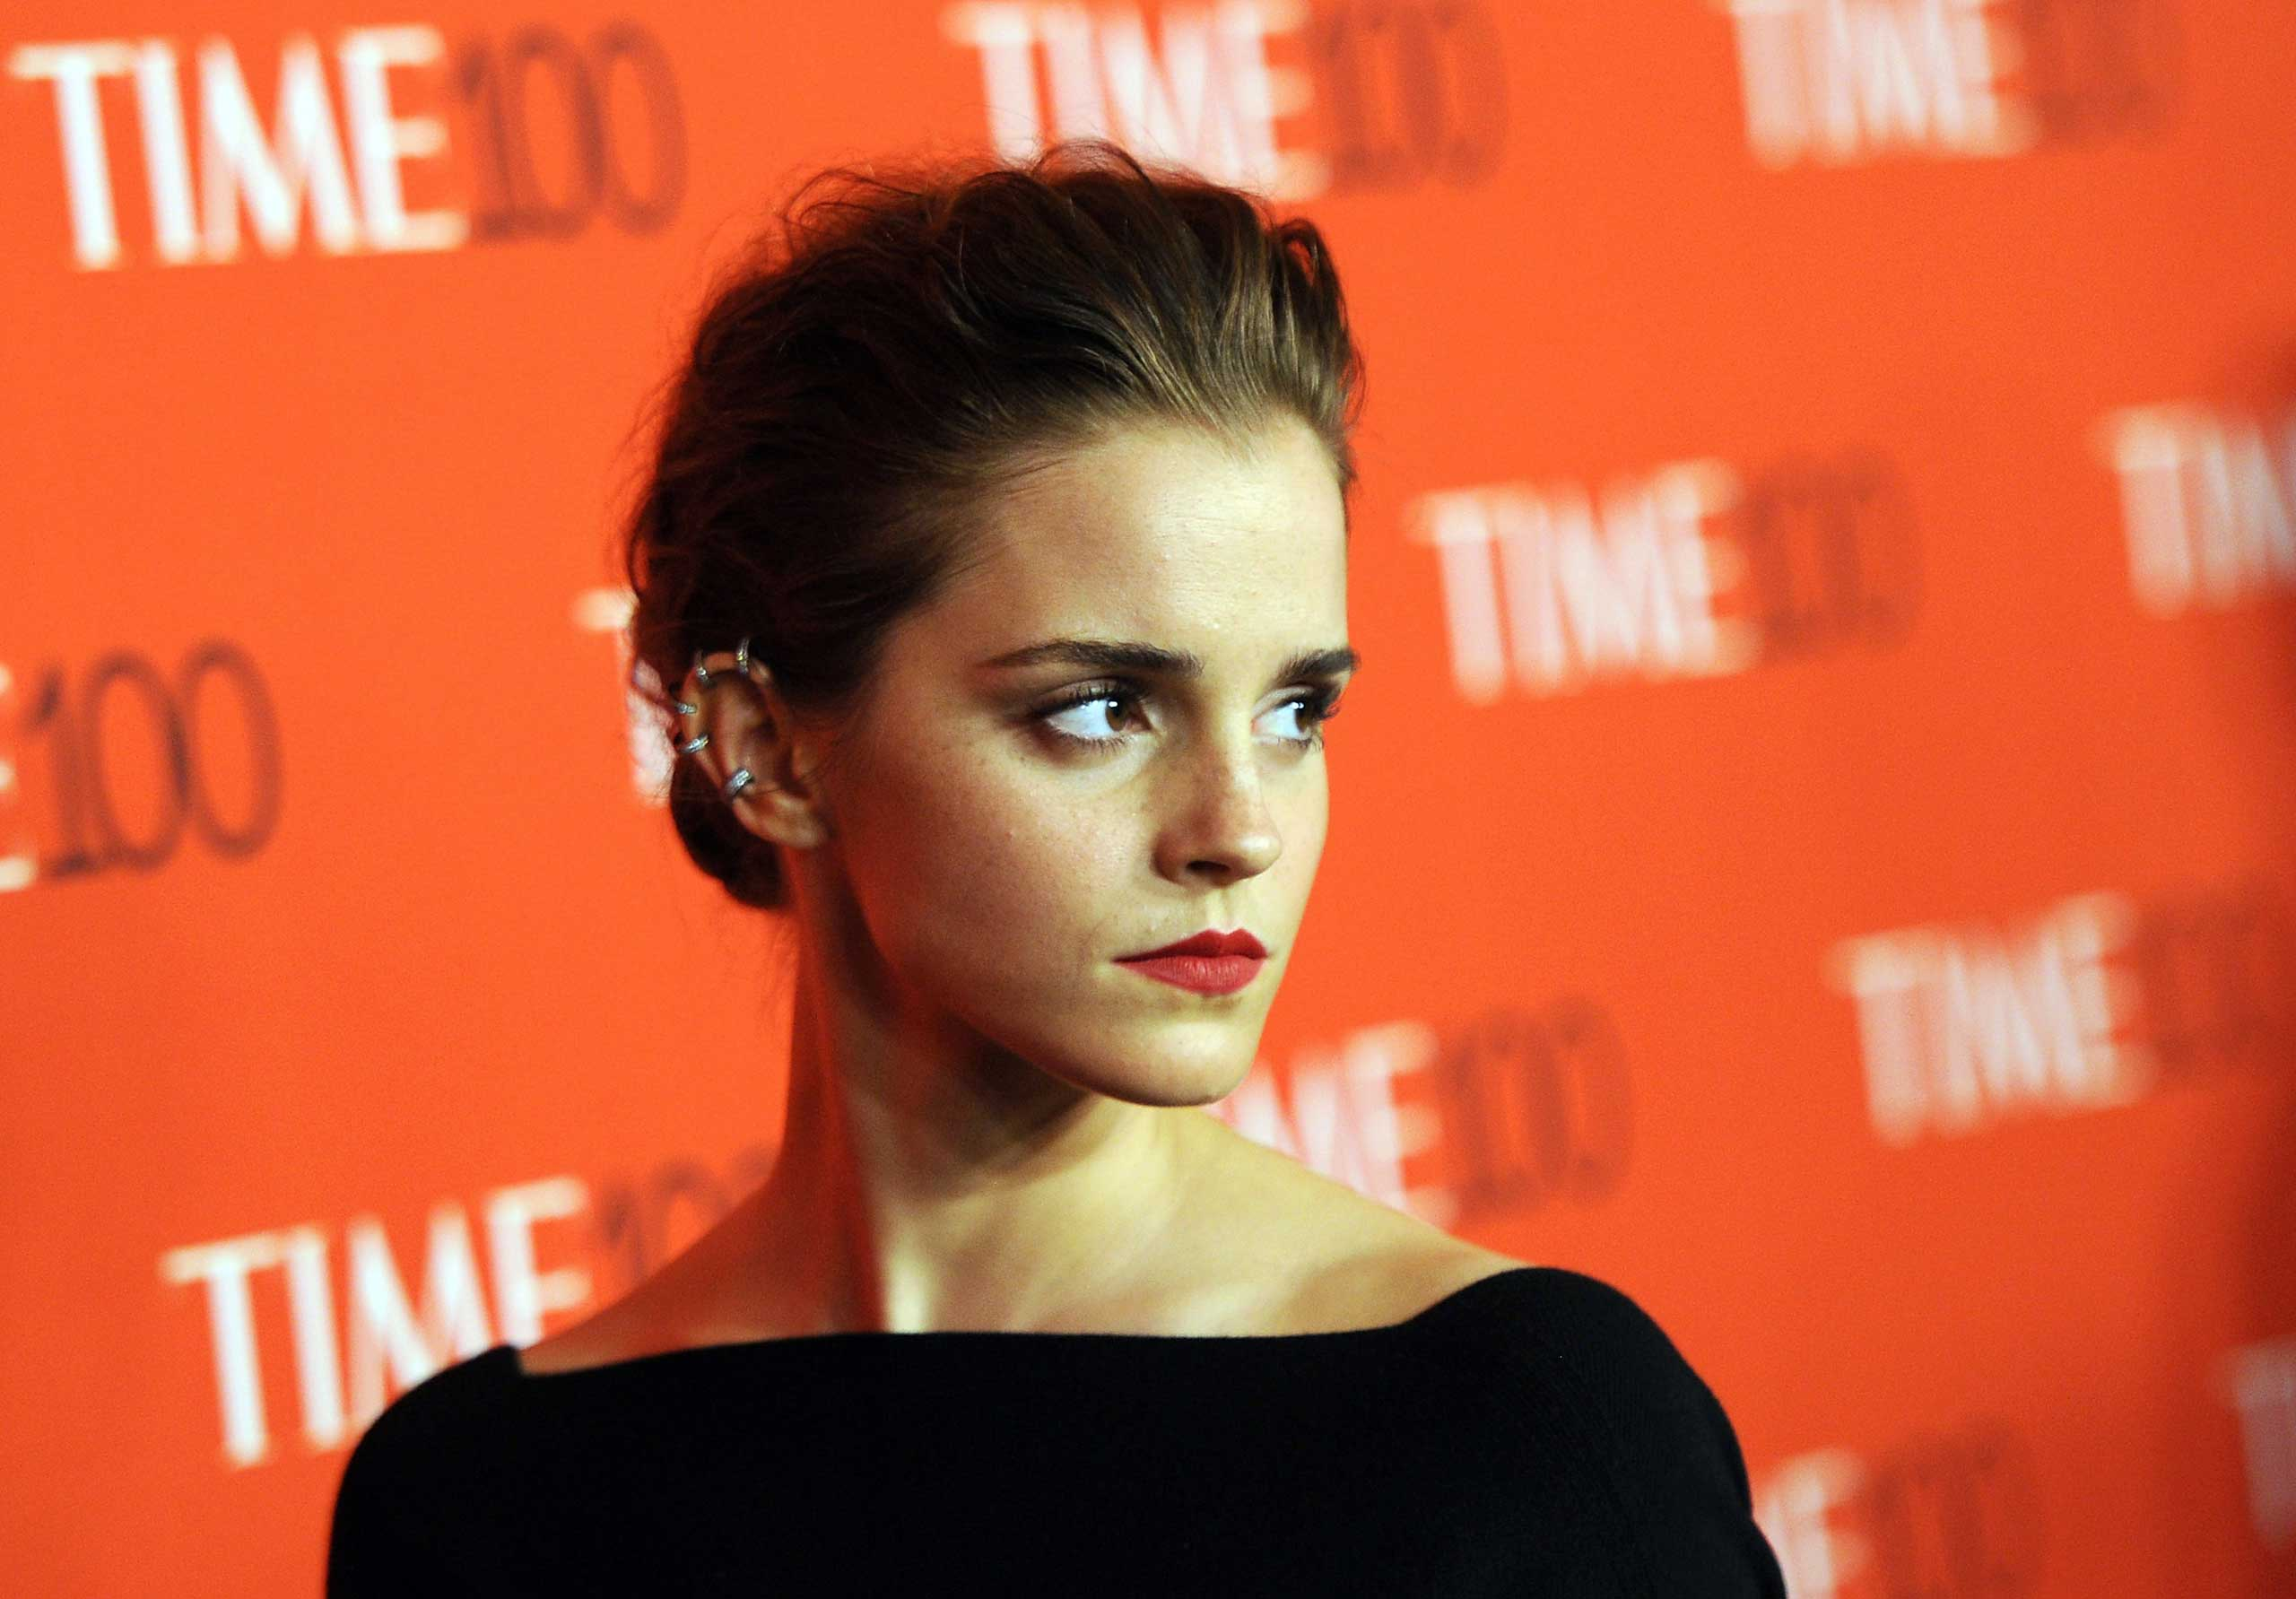 Emma Watson attends the TIME 100 Gala at Jazz at Lincoln Center in New York City on April 21, 2015.